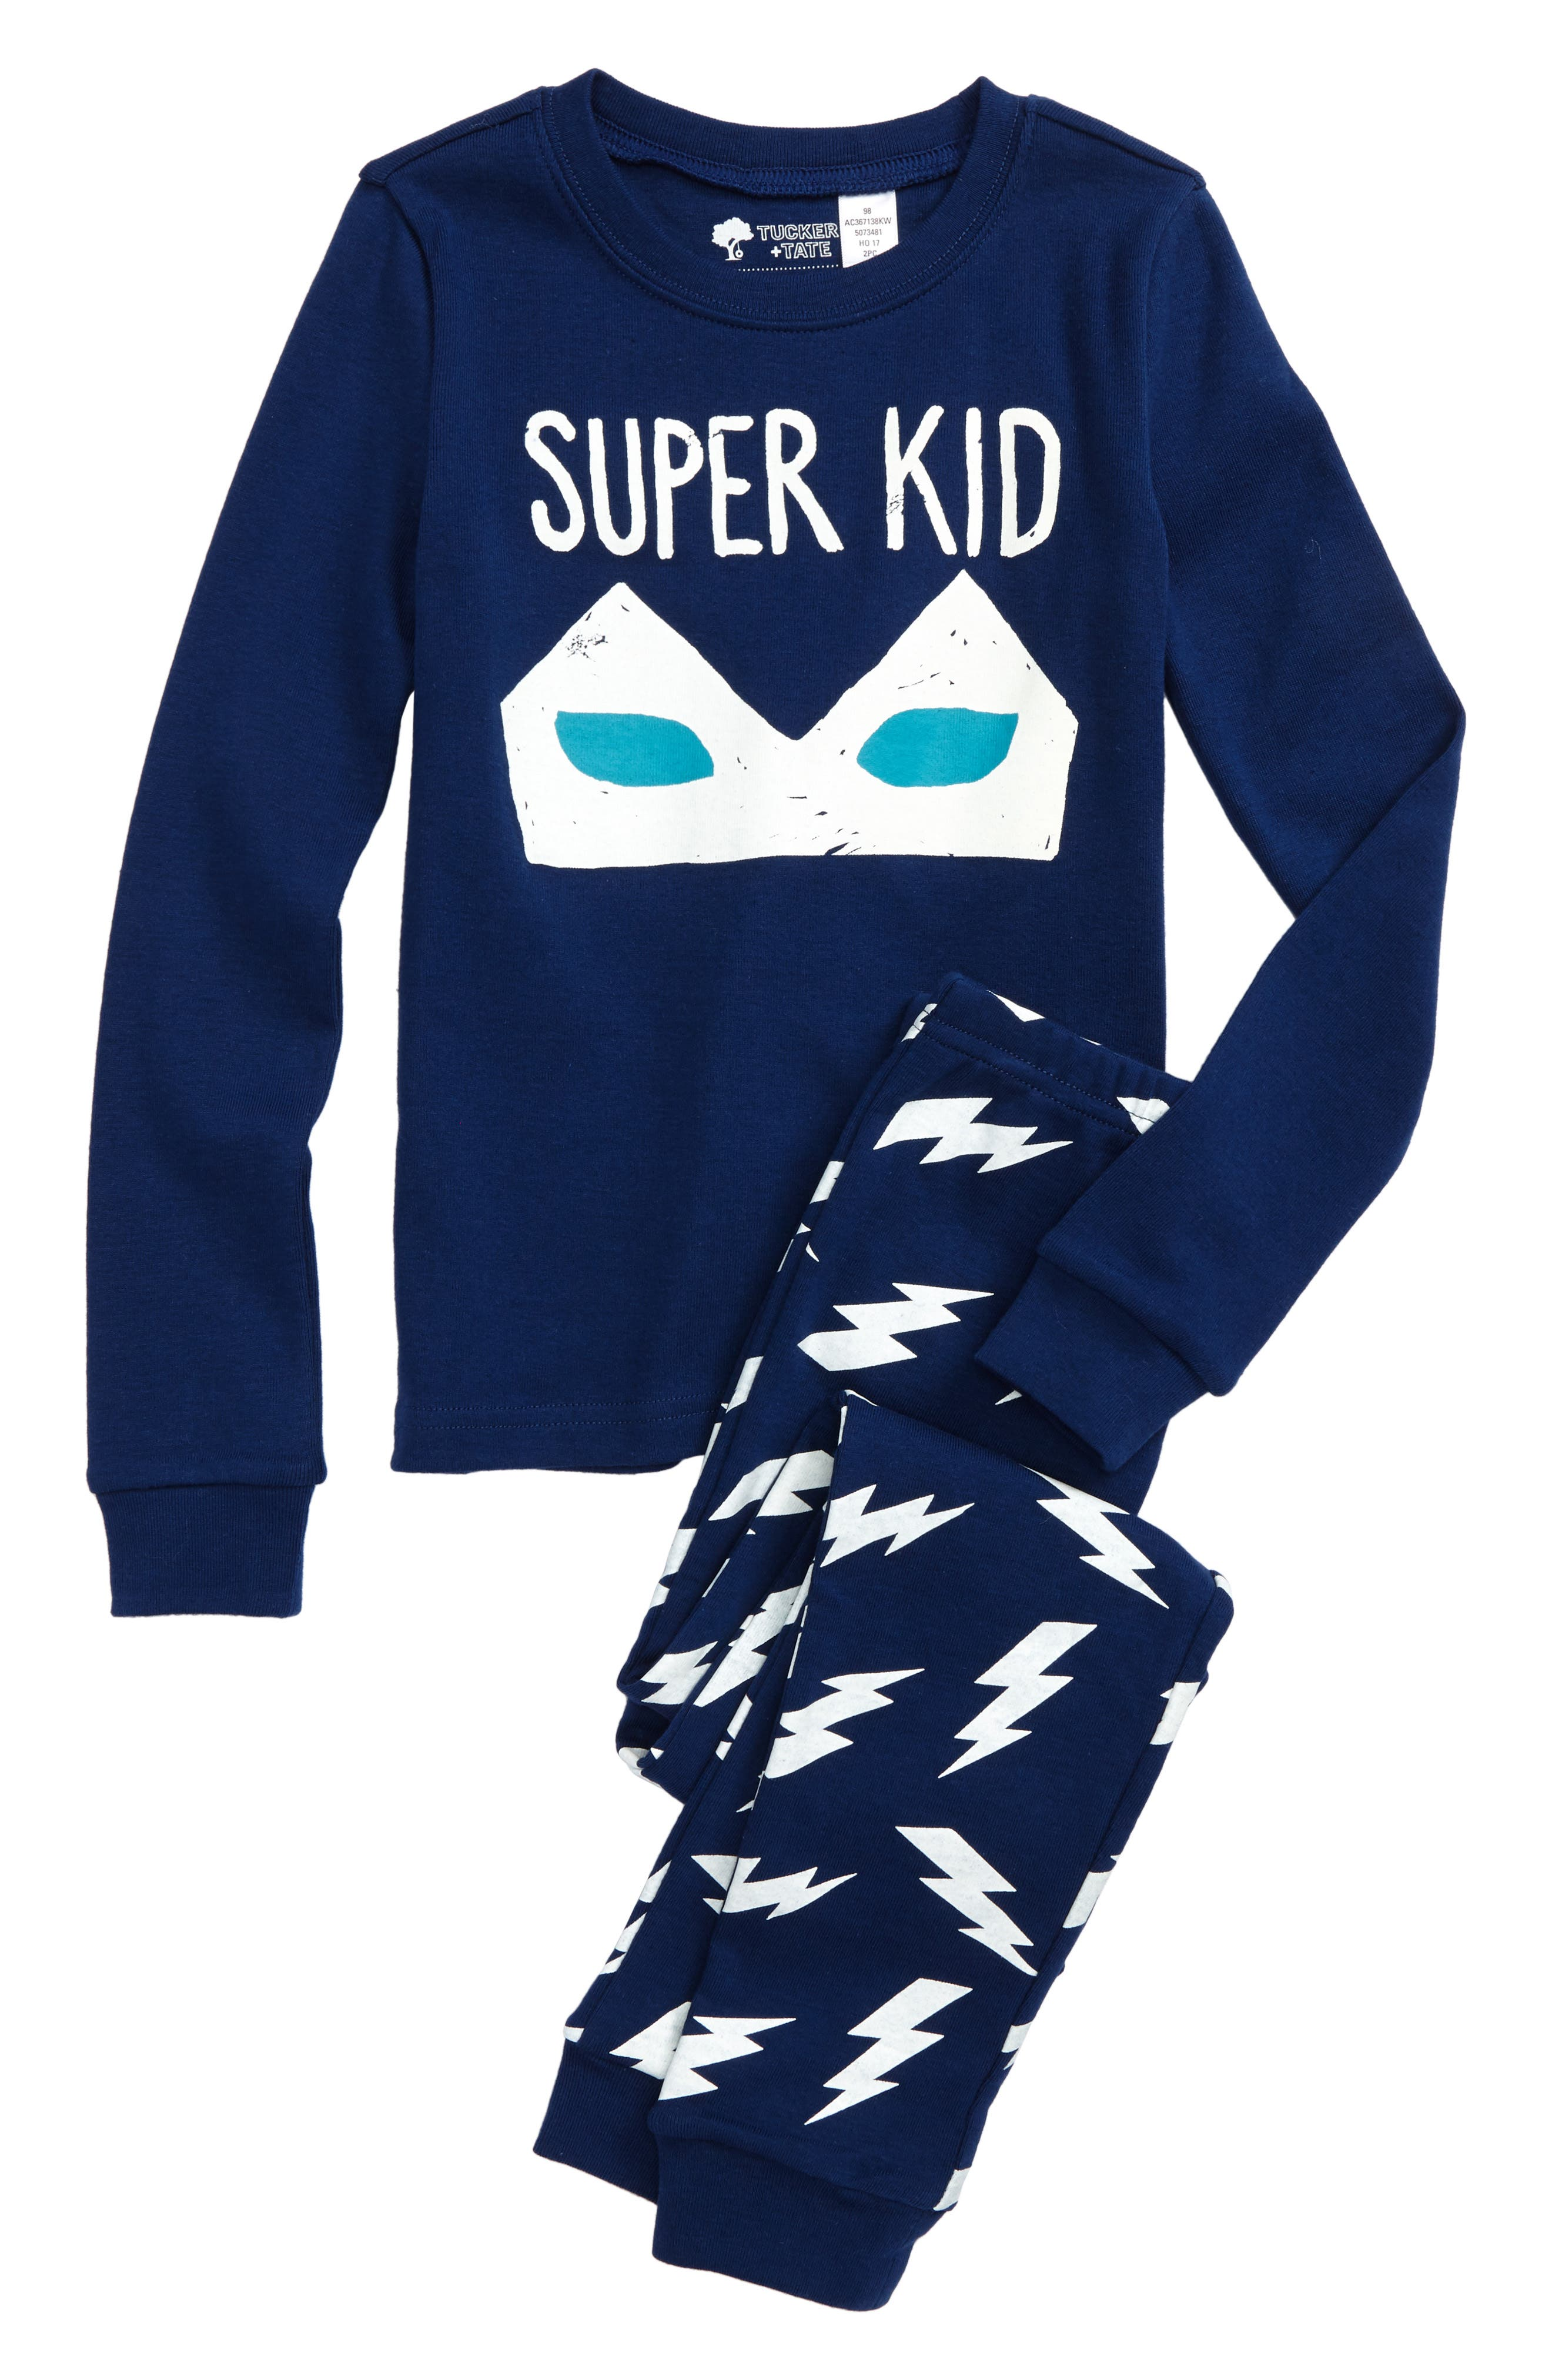 Super Kid Glow in the Dark Fitted Two-Piece Pajamas,                         Main,                         color,